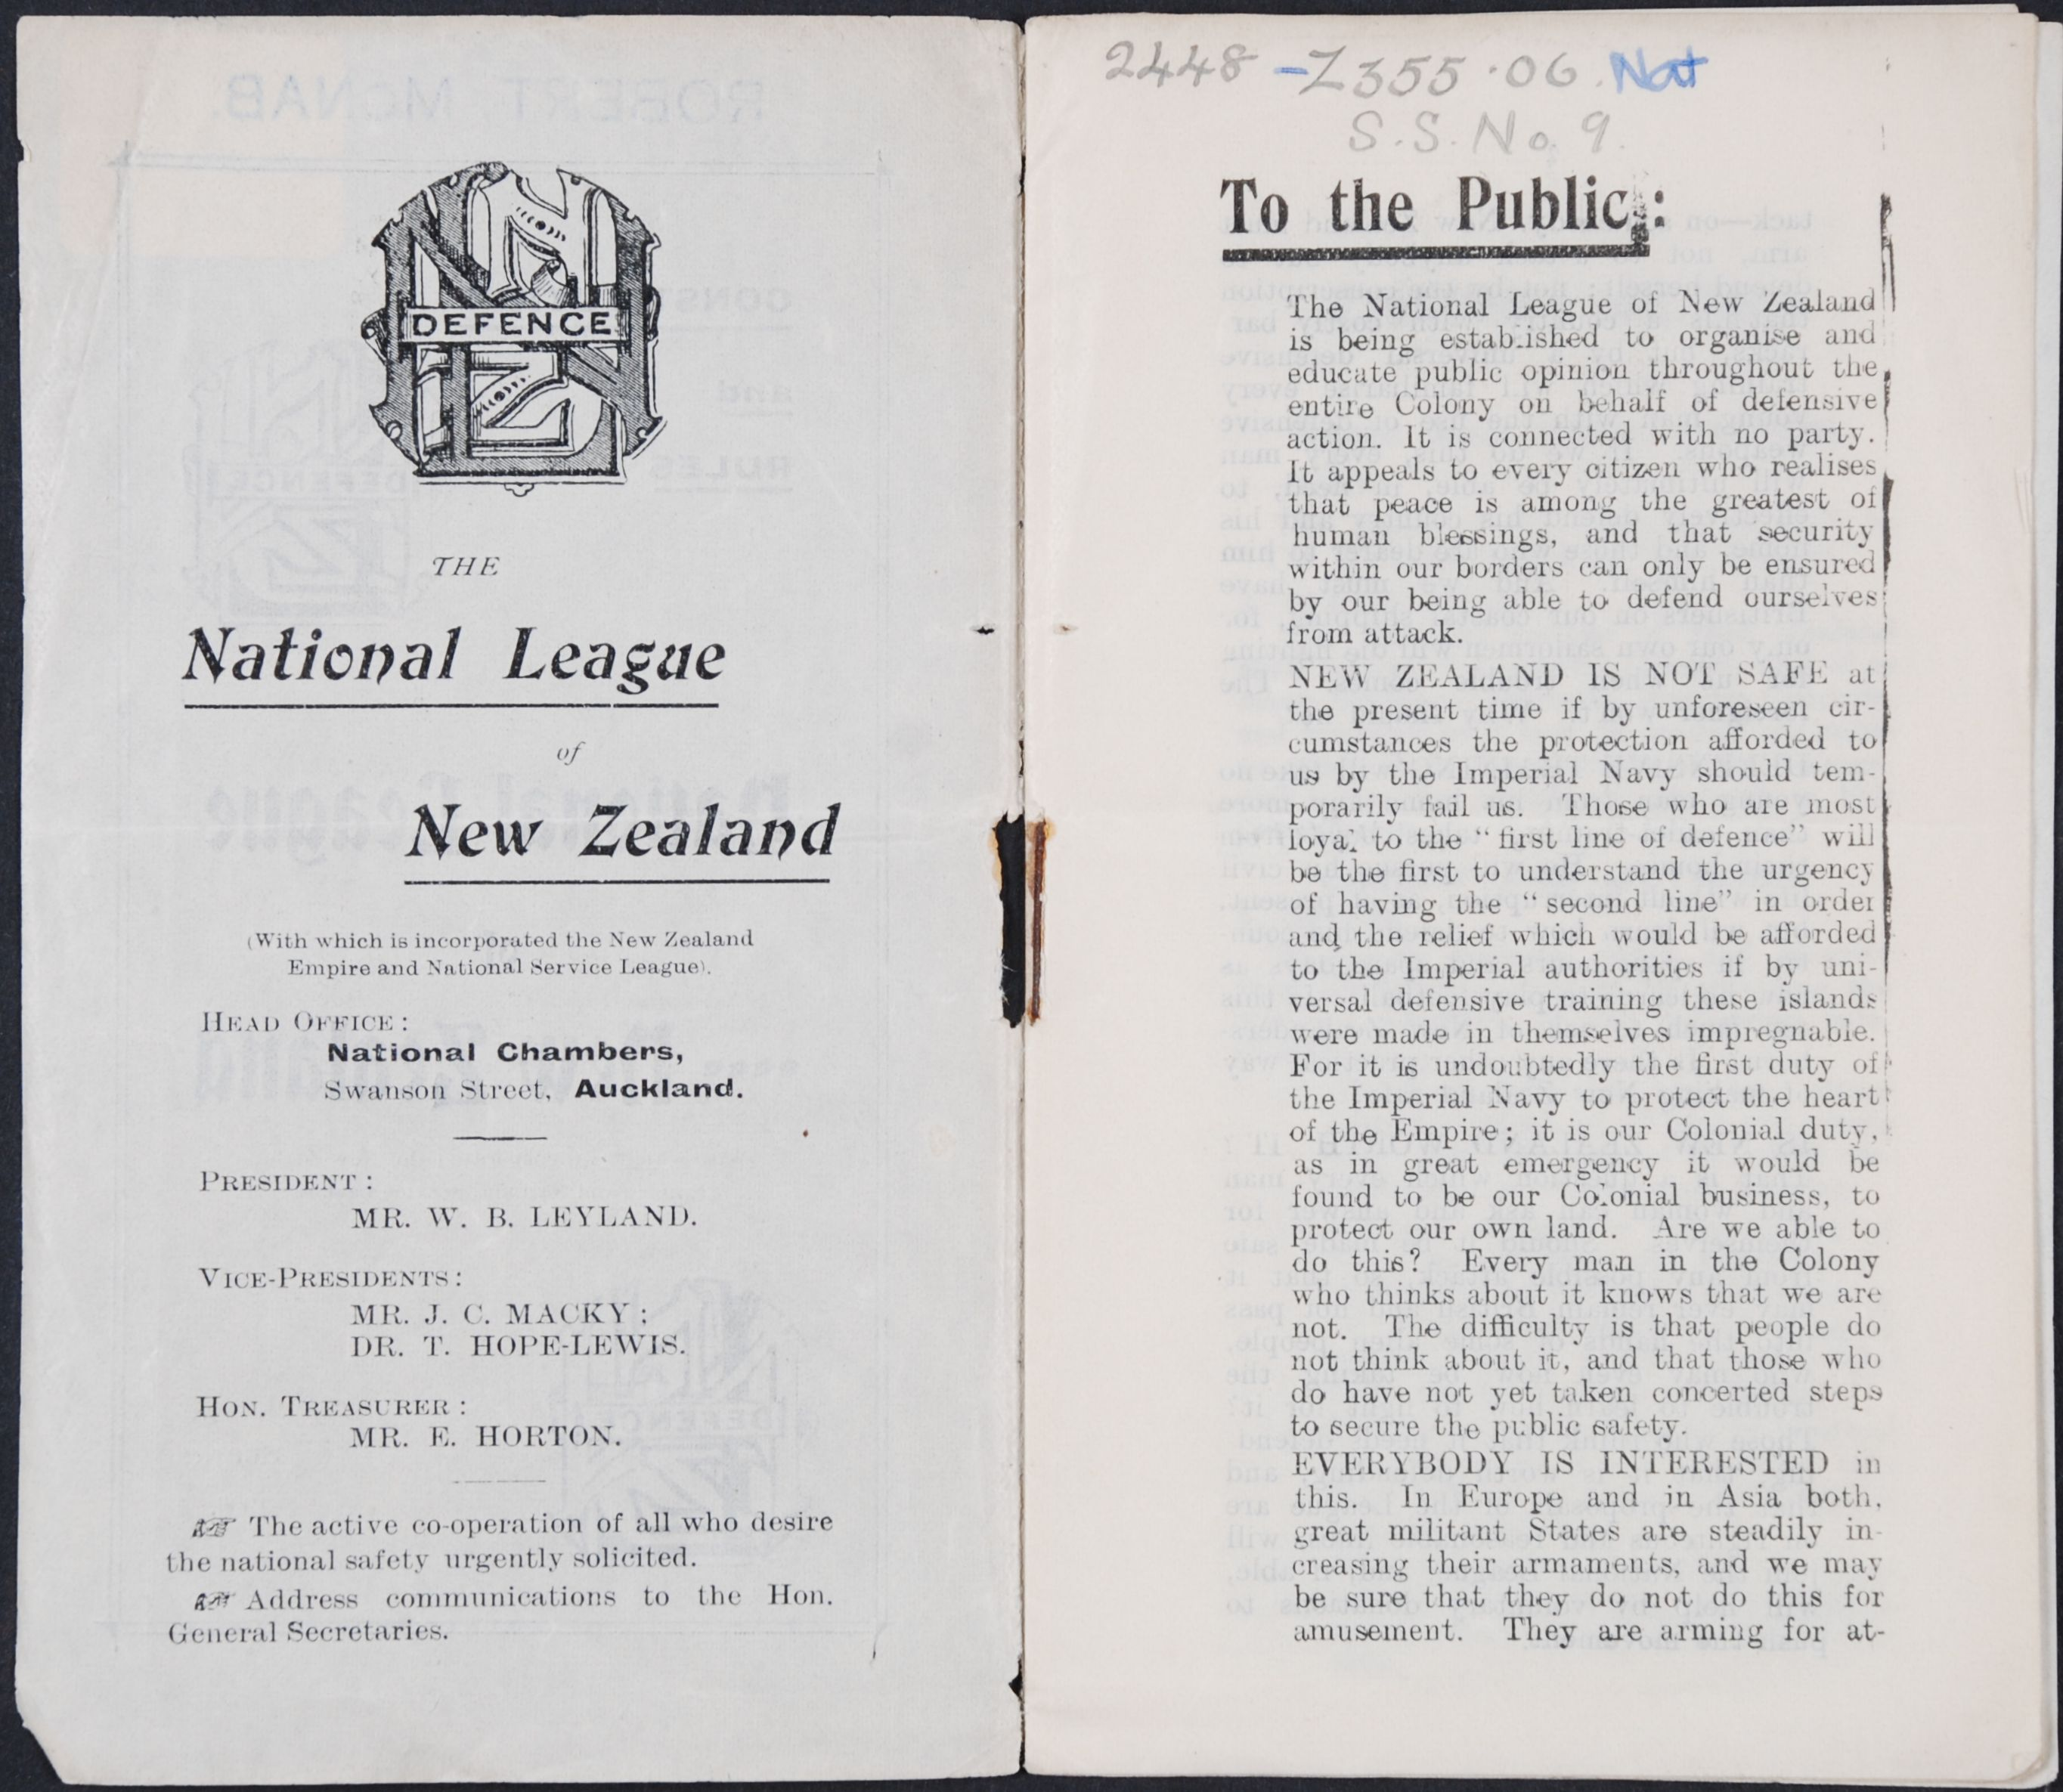 National League of New Zealand. Constitution and Rules: National League of New Zealand (with which is incorporated the New Zealand Empire and National Service League).  Auckland: Herald, 1906.